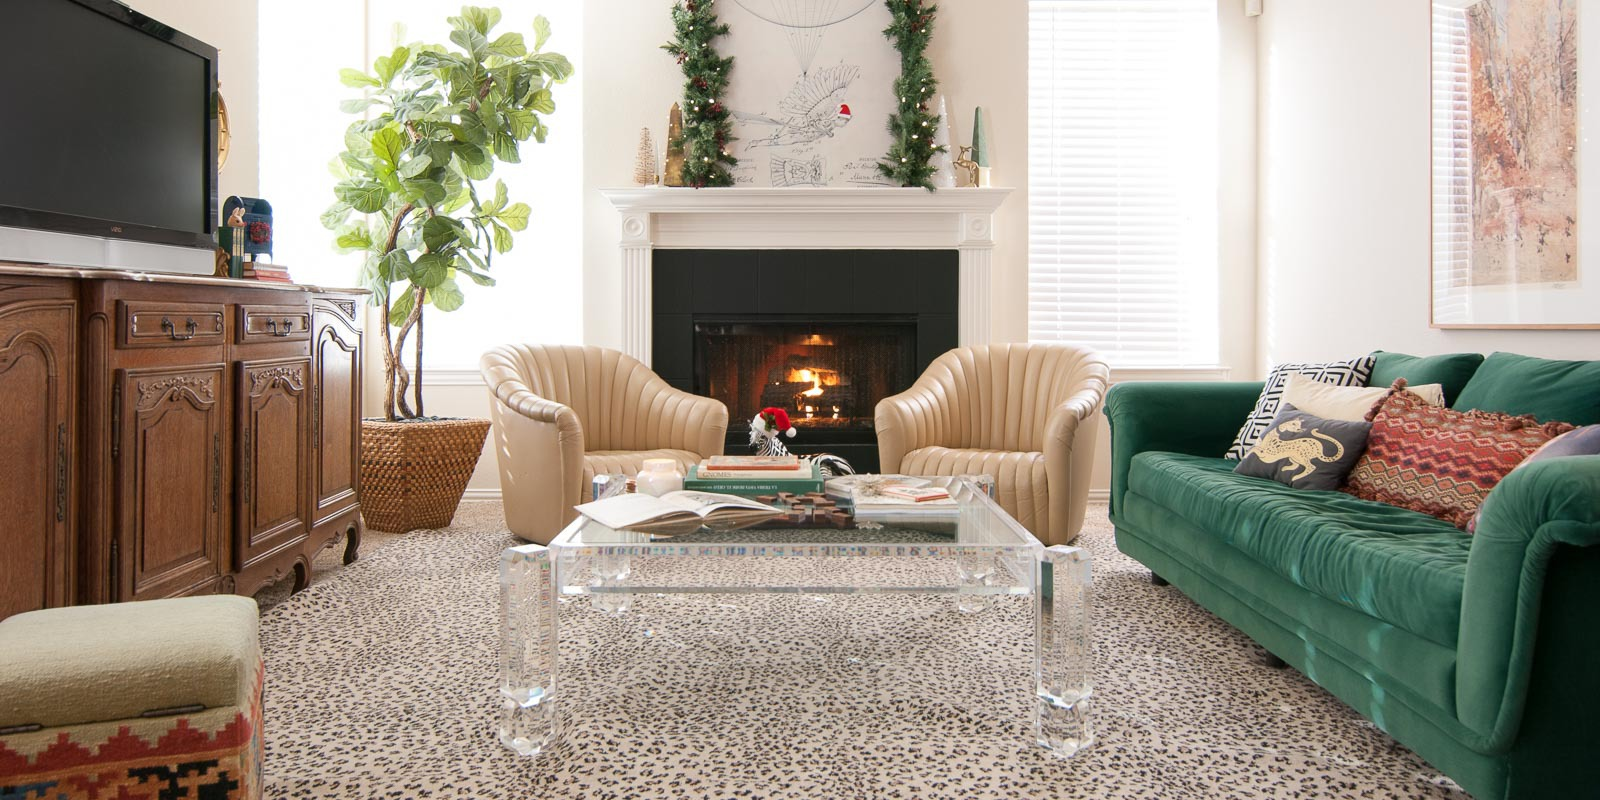 An Eclectic Indian Home Tour: Vintage Eclectic Christmas Home Tour